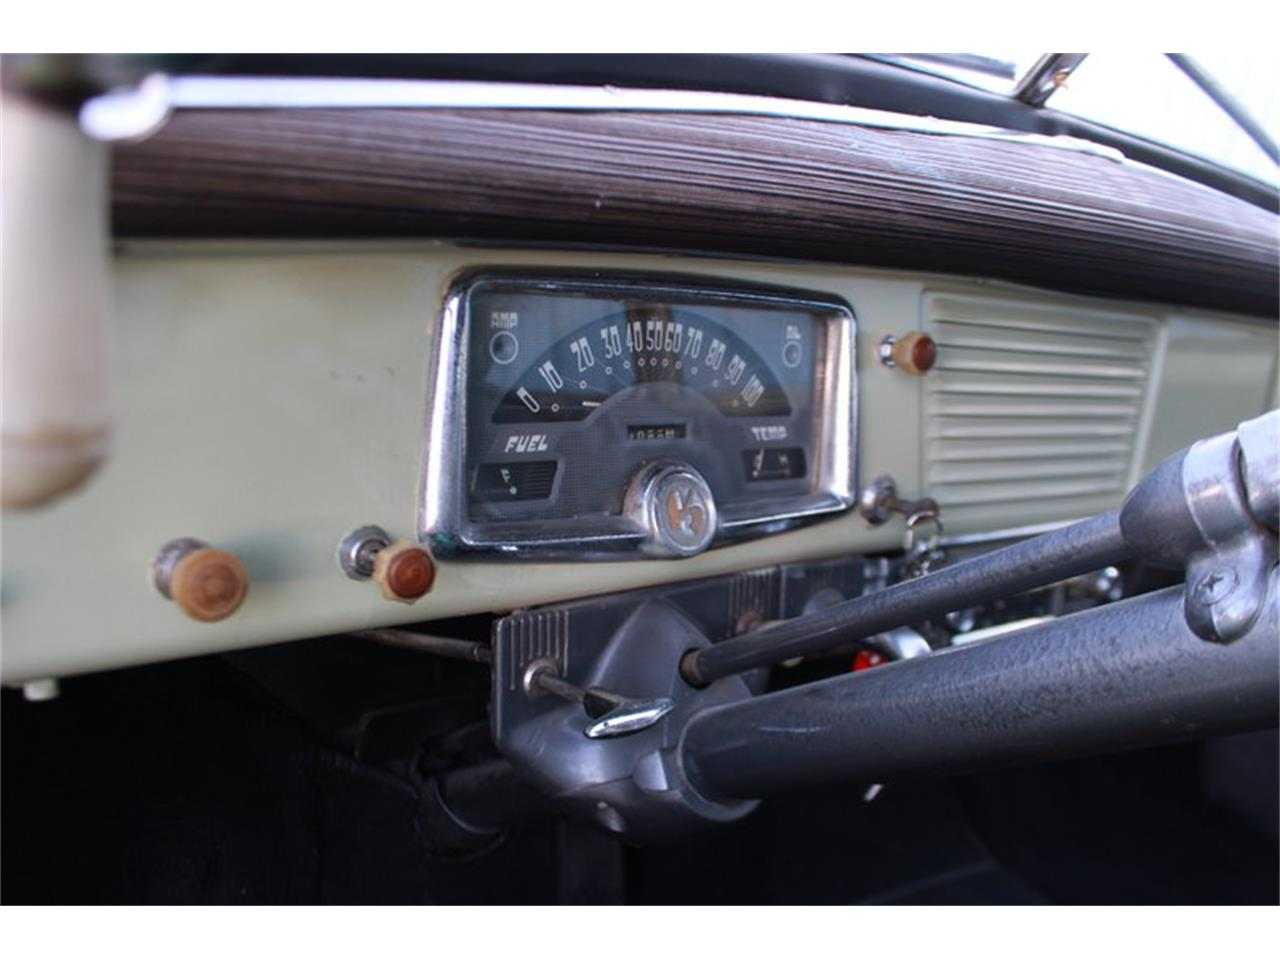 Large Picture of Classic '53 Corsair Deluxe - $16,500.00 - LDCW